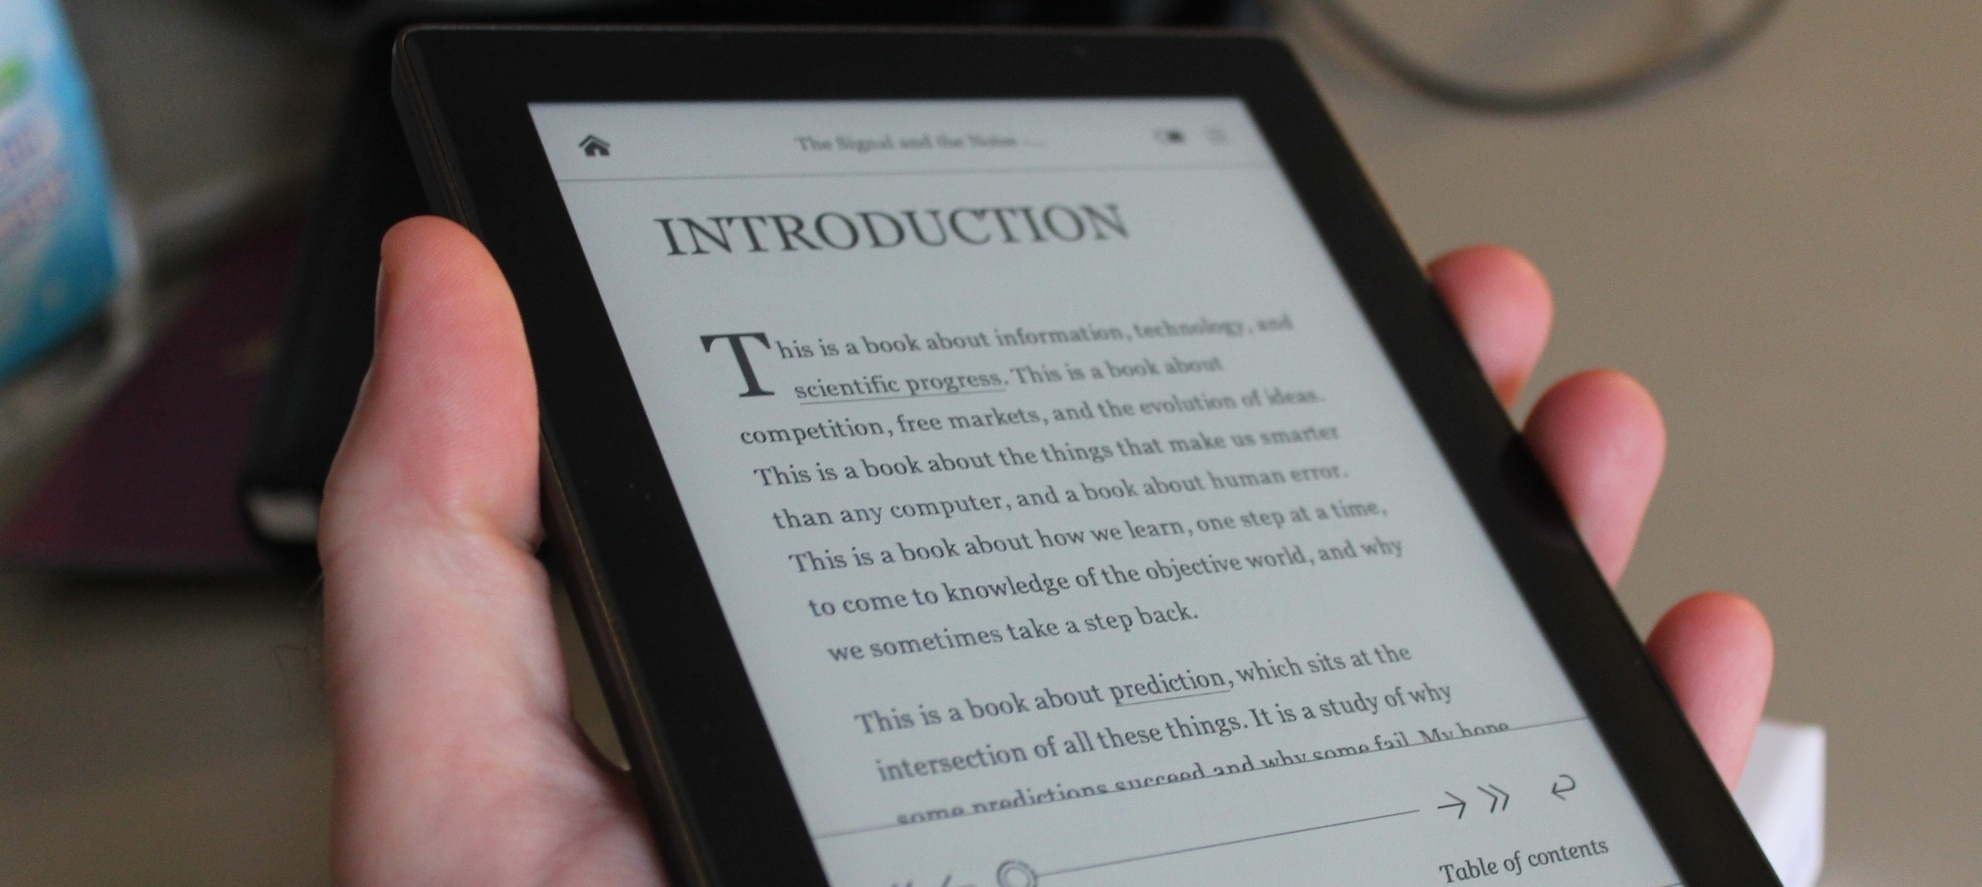 Kobo Aura Review: A Compact E-Reader that Packs a Punch